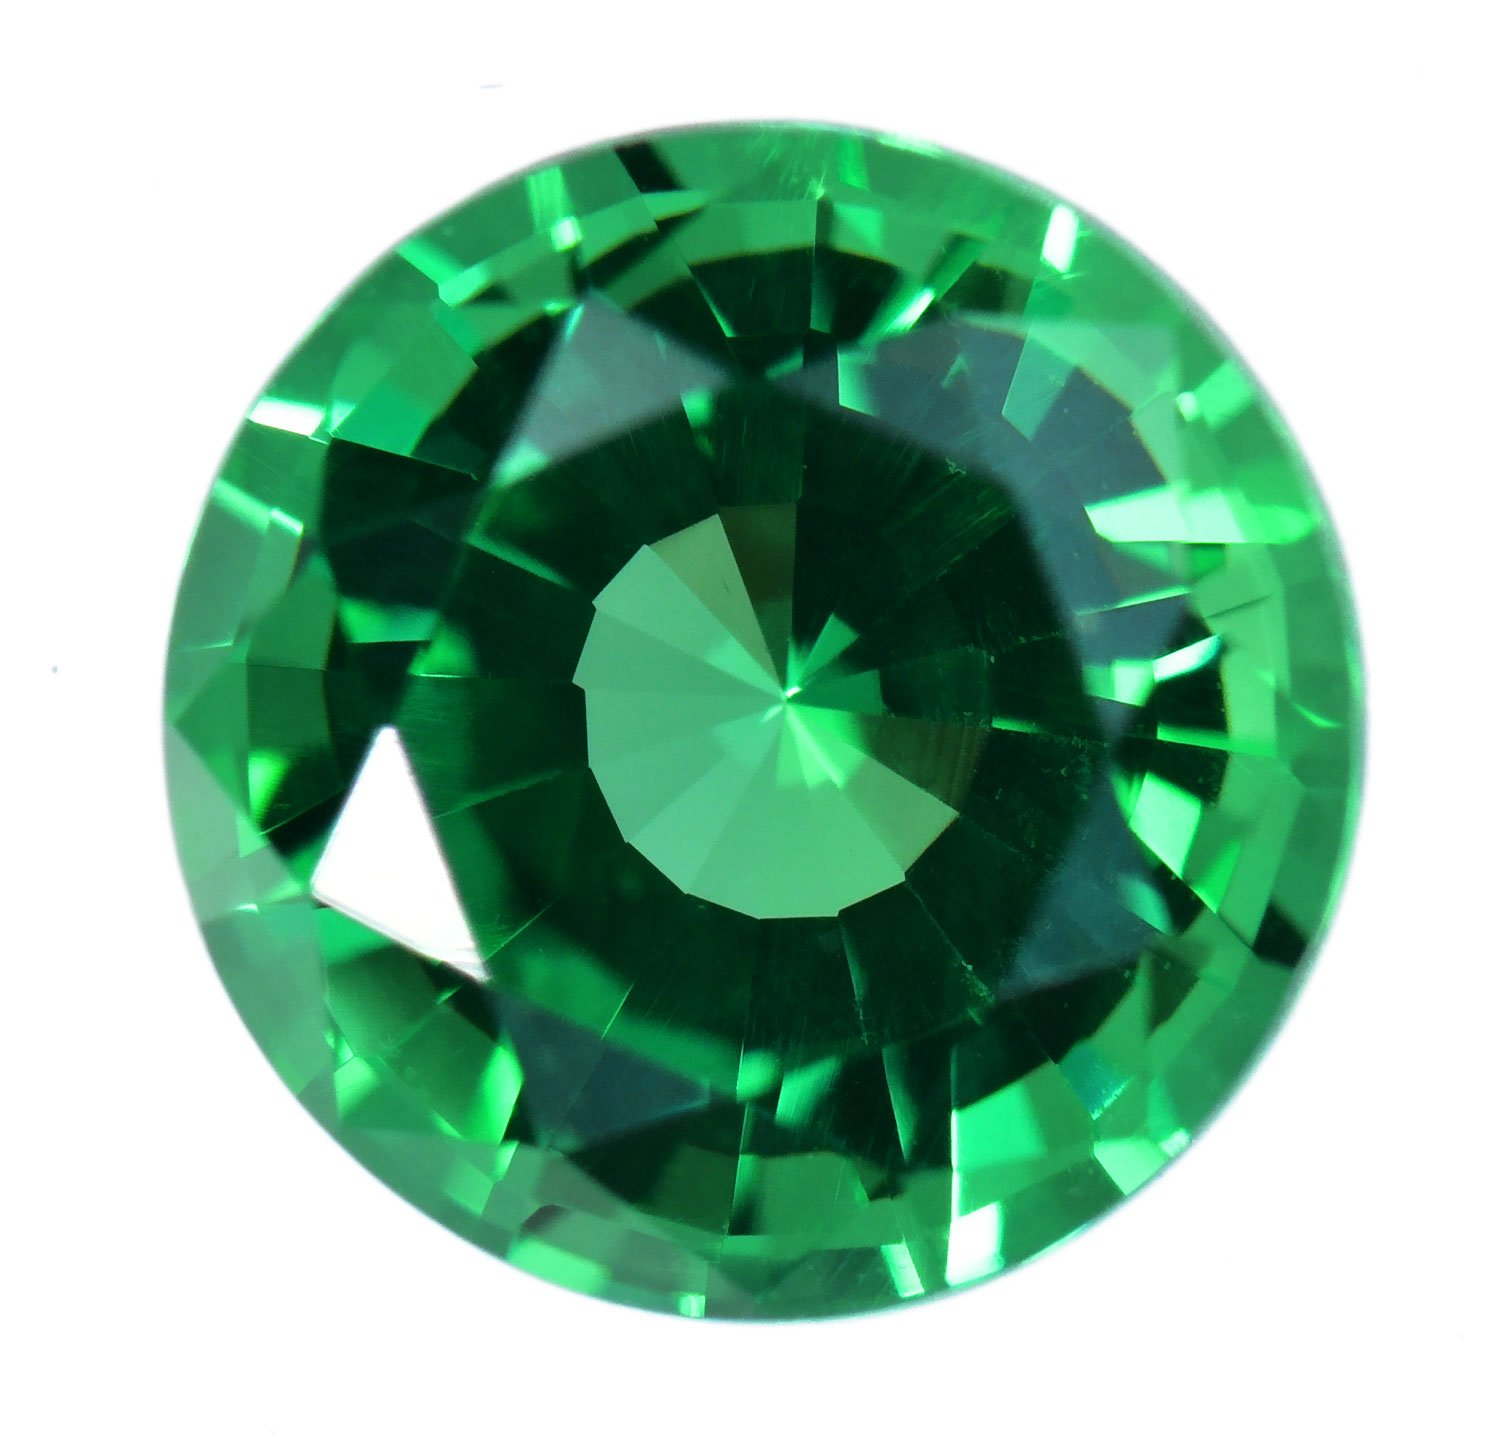 uGems Simulated Emerald Faceted Cut Loose Stone Round 6mm